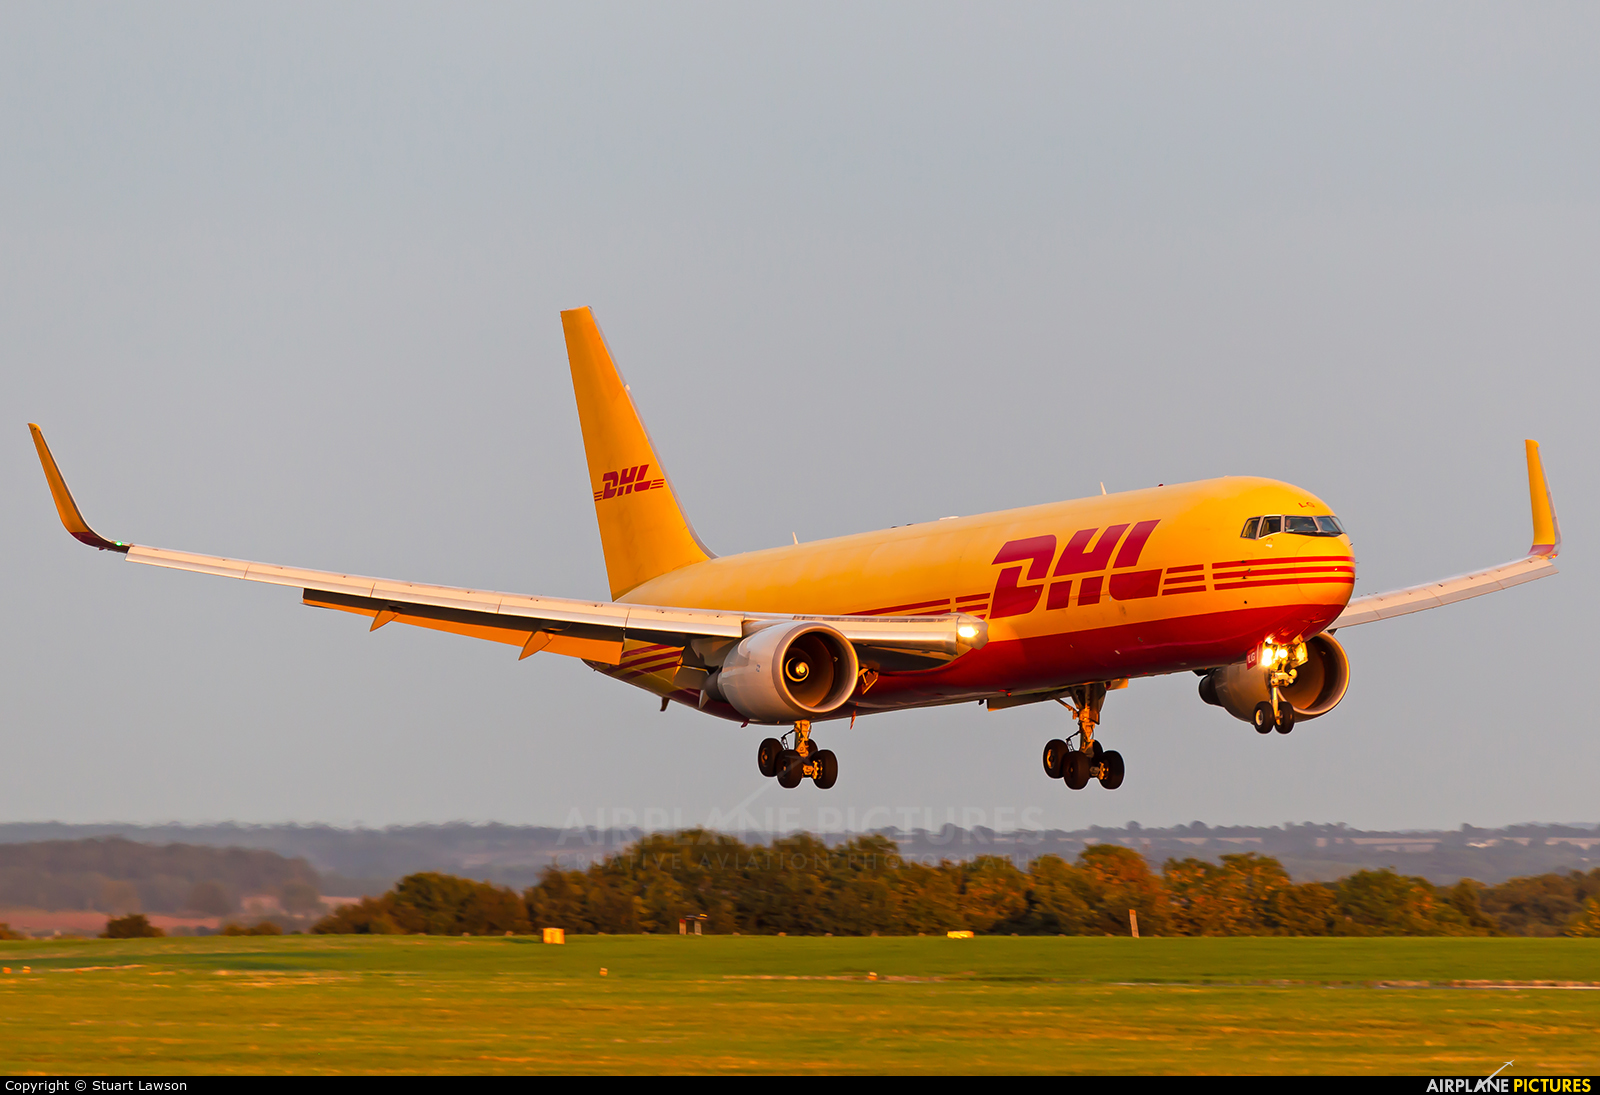 DHL Cargo G-DHLG aircraft at East Midlands